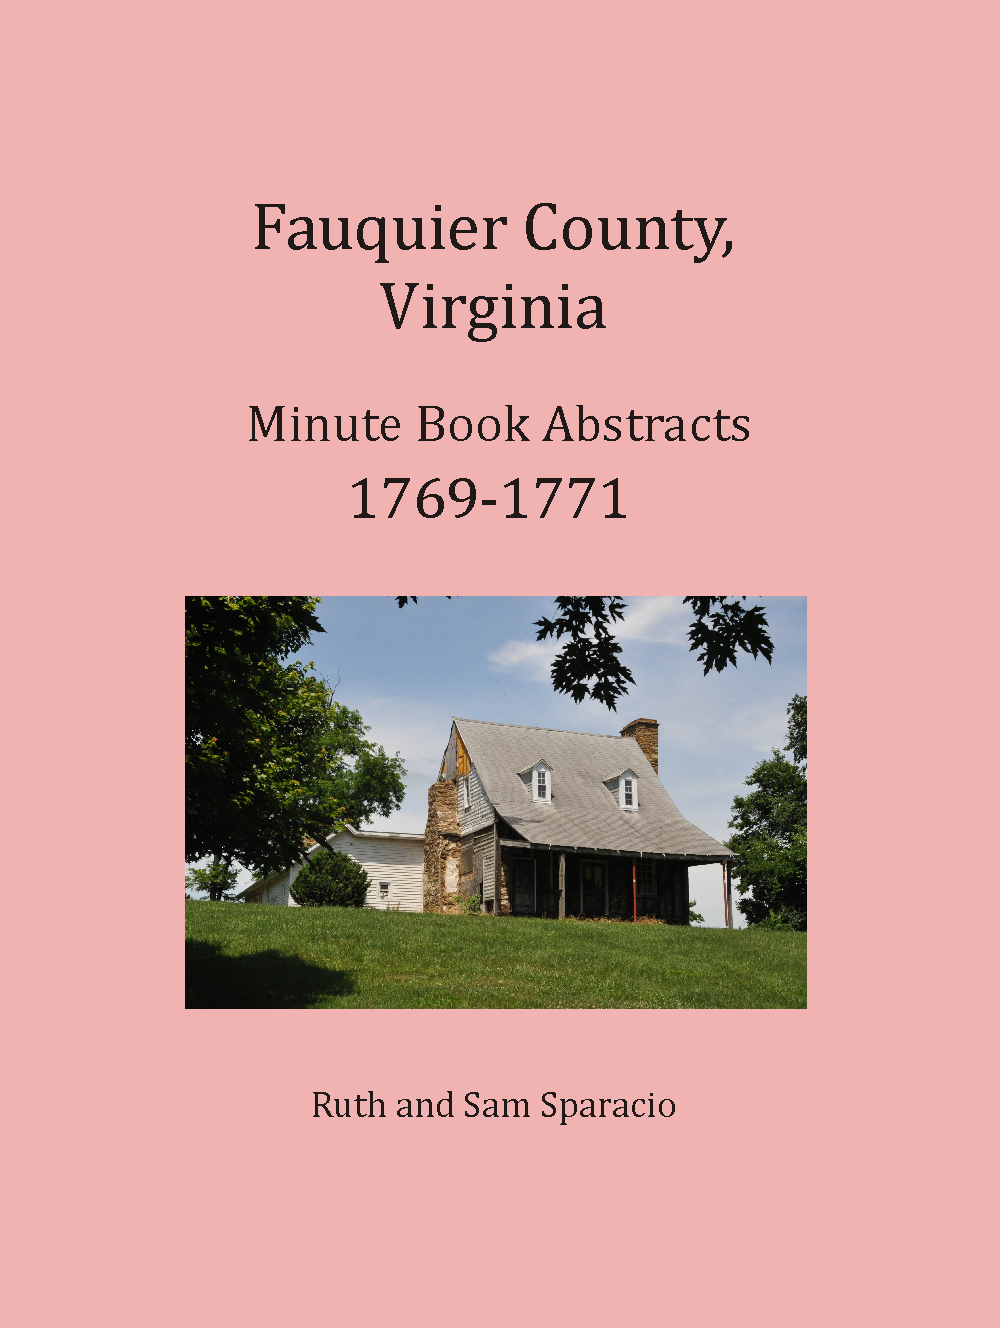 Fauquier County, Virginia Minute Book, 1769-1771